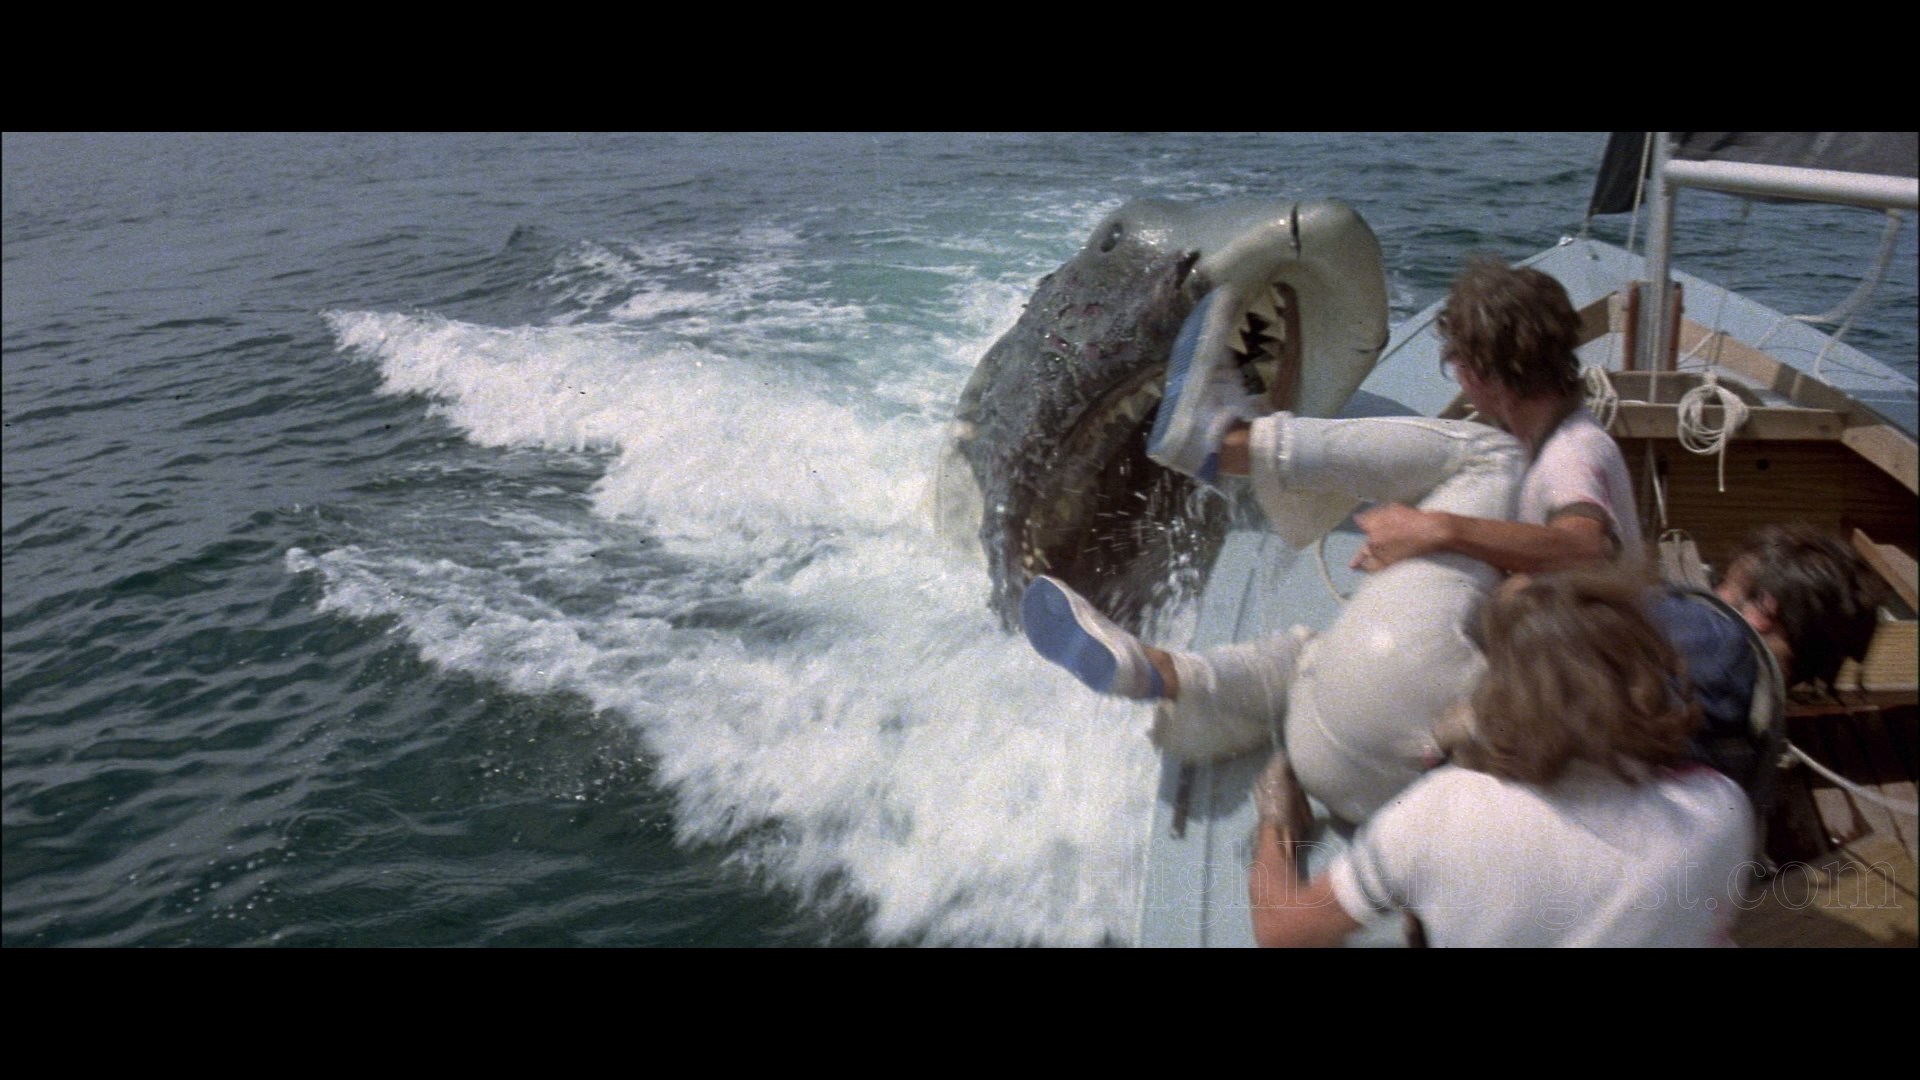 Movie Review: Need a bigger shark? 'Meg' makes 'Jaws' look like a minnow